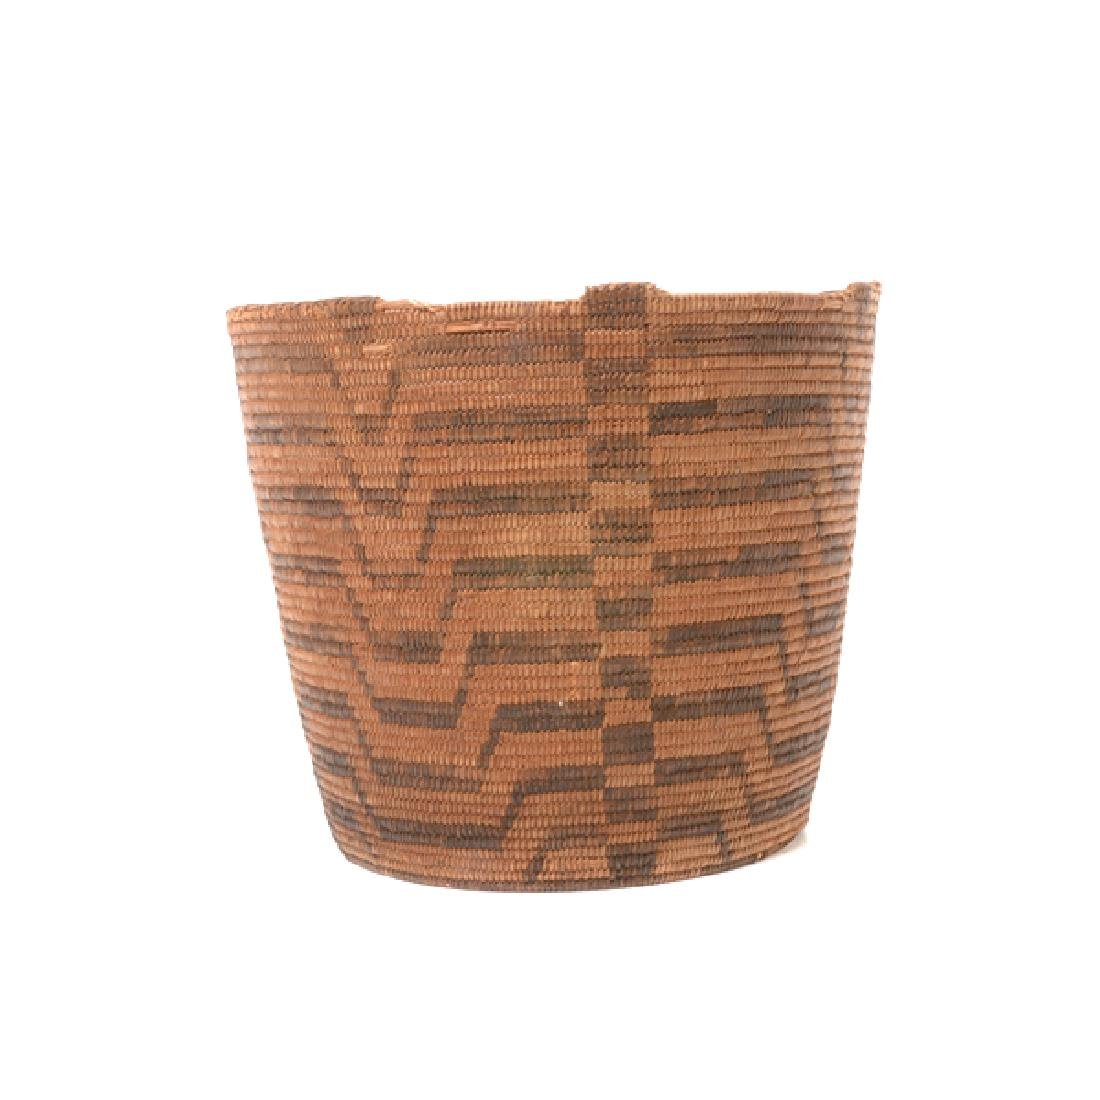 Three Native American Hand Woven Baskets - 8